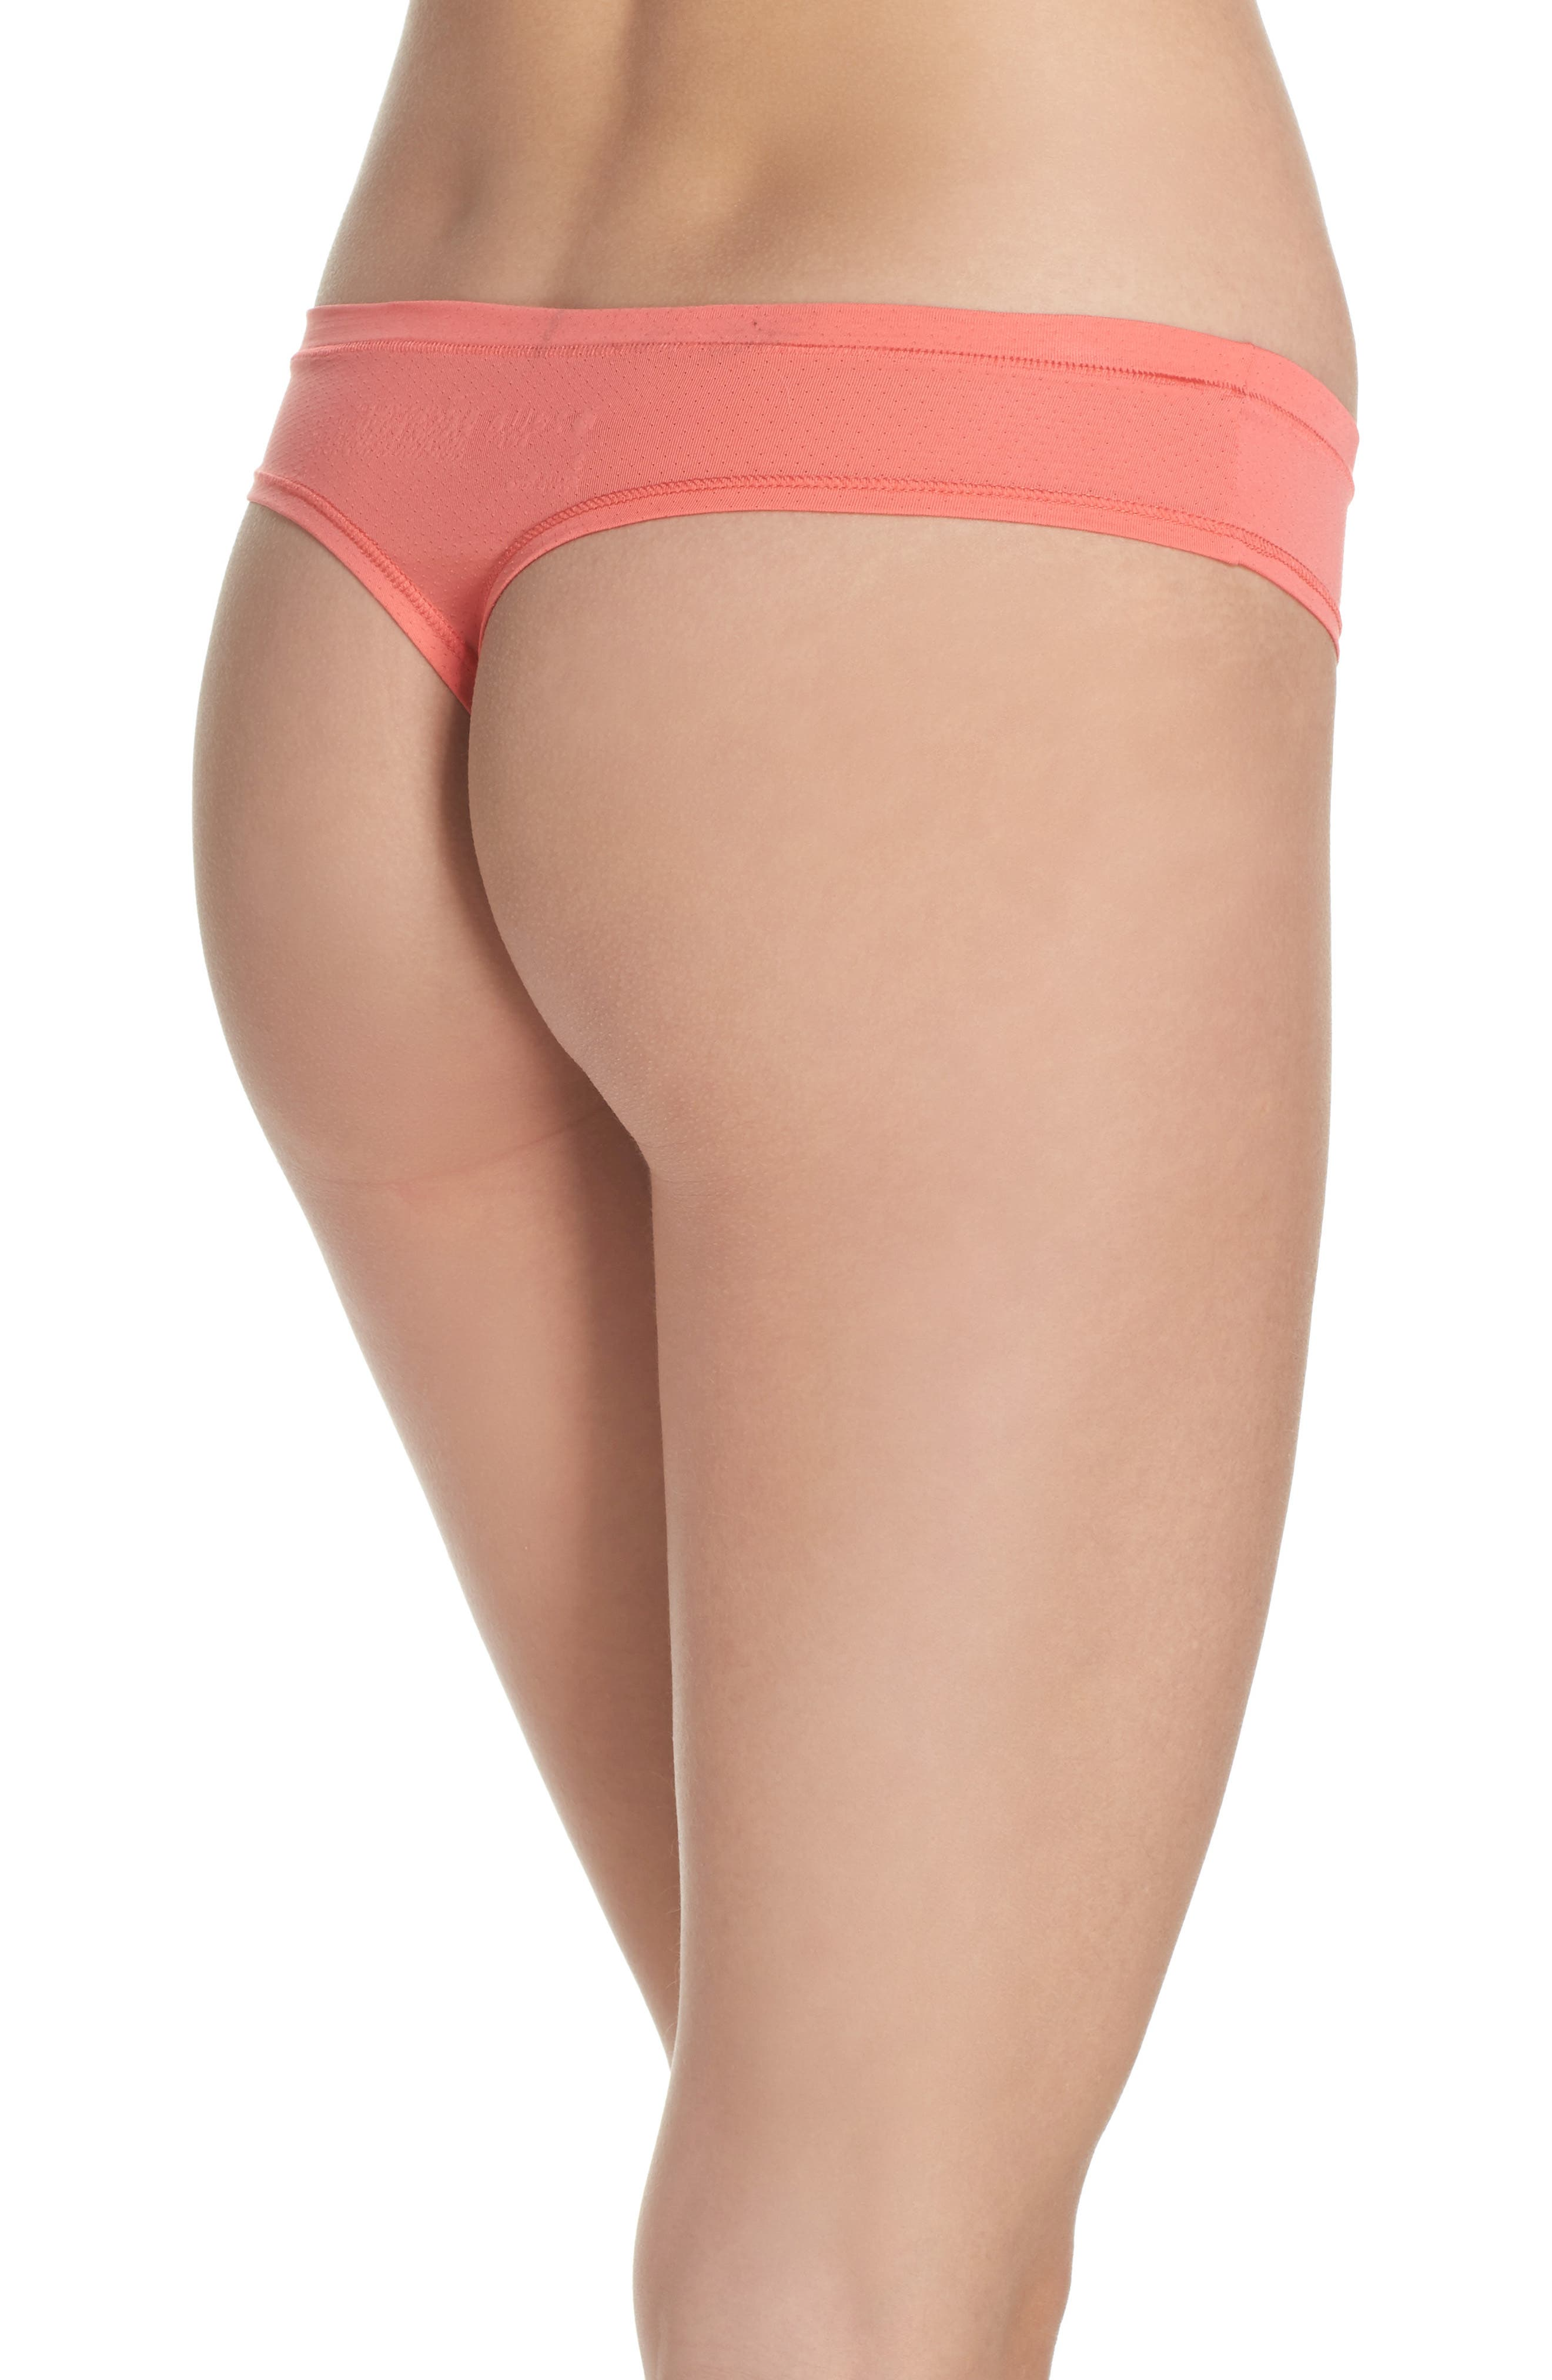 Alternate Image 2  - Zella Body Perforated Active Thong (3 for $33)